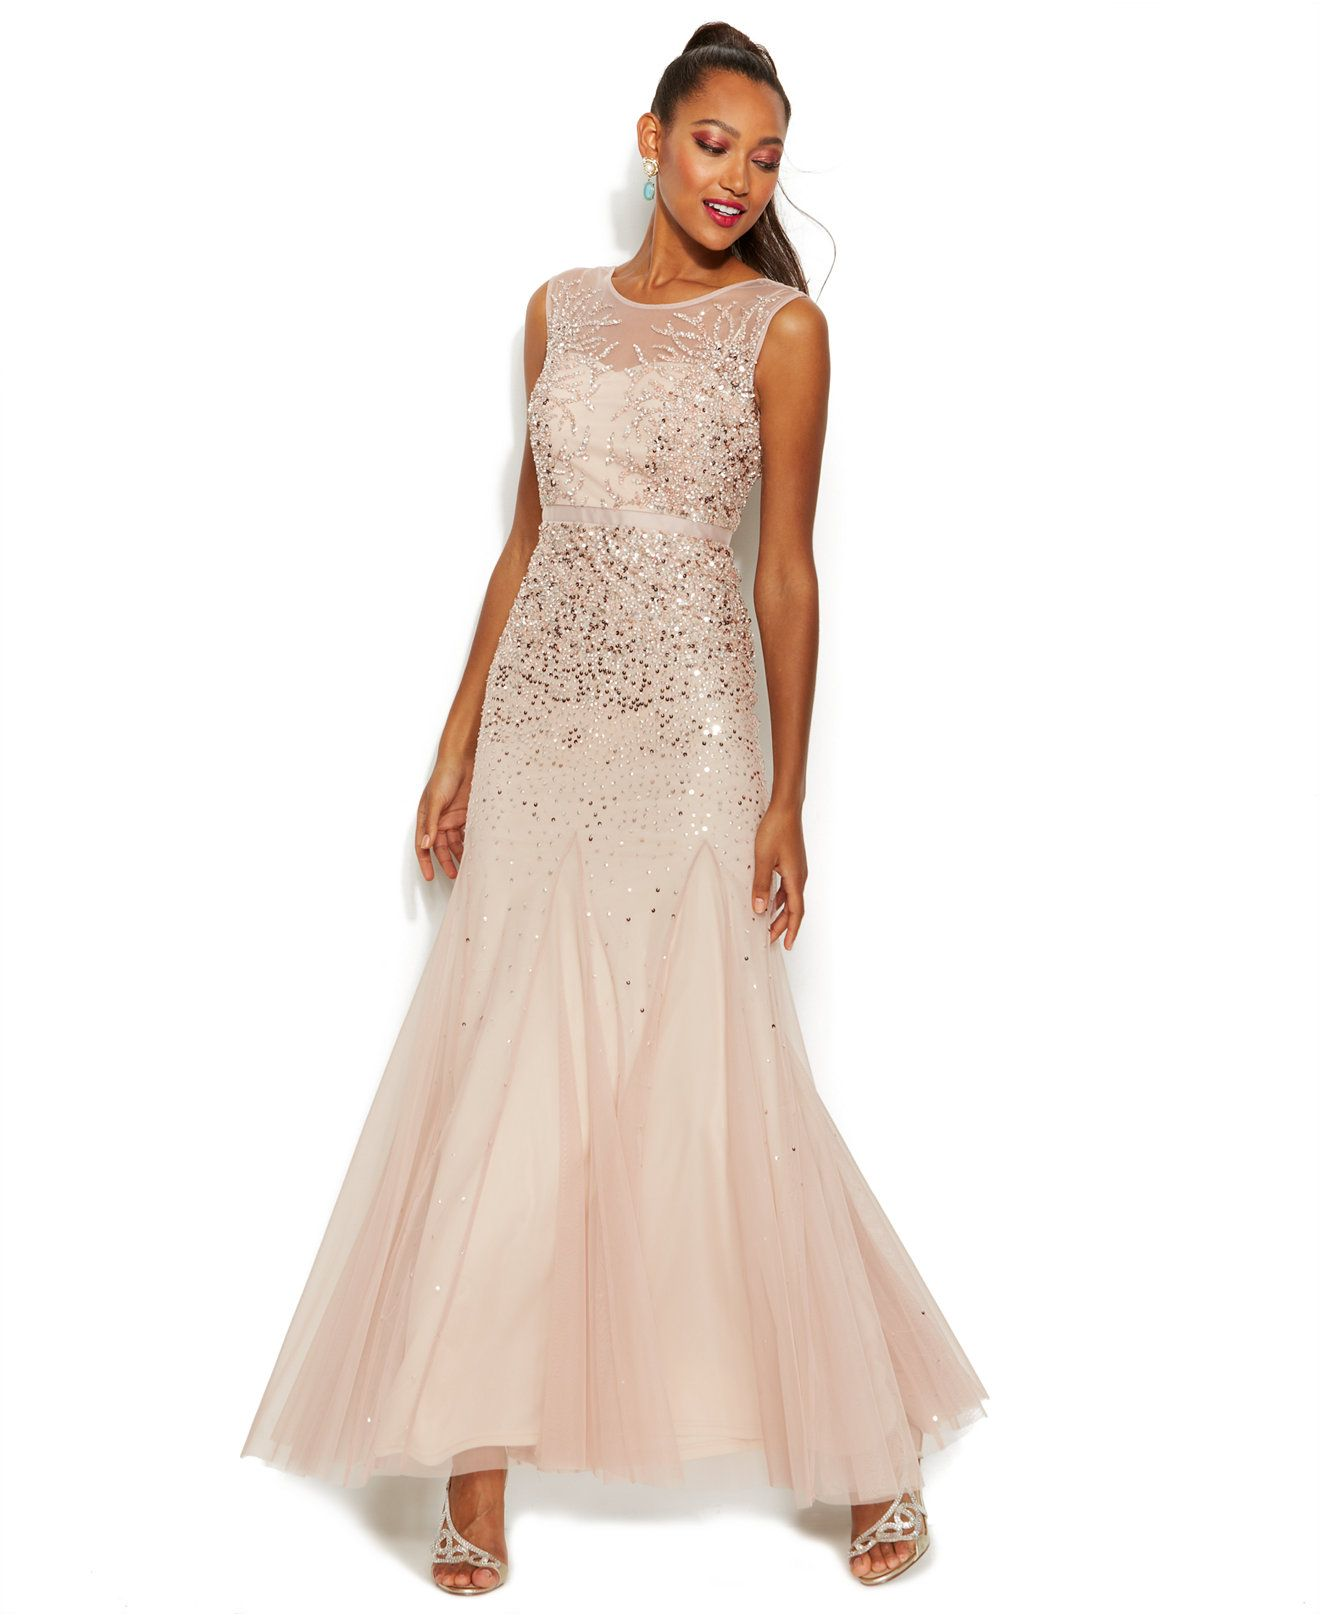 f8a639eb59 Adrianna Papell Petite Beaded Illusion Gown - Dresses - Women - Macy s